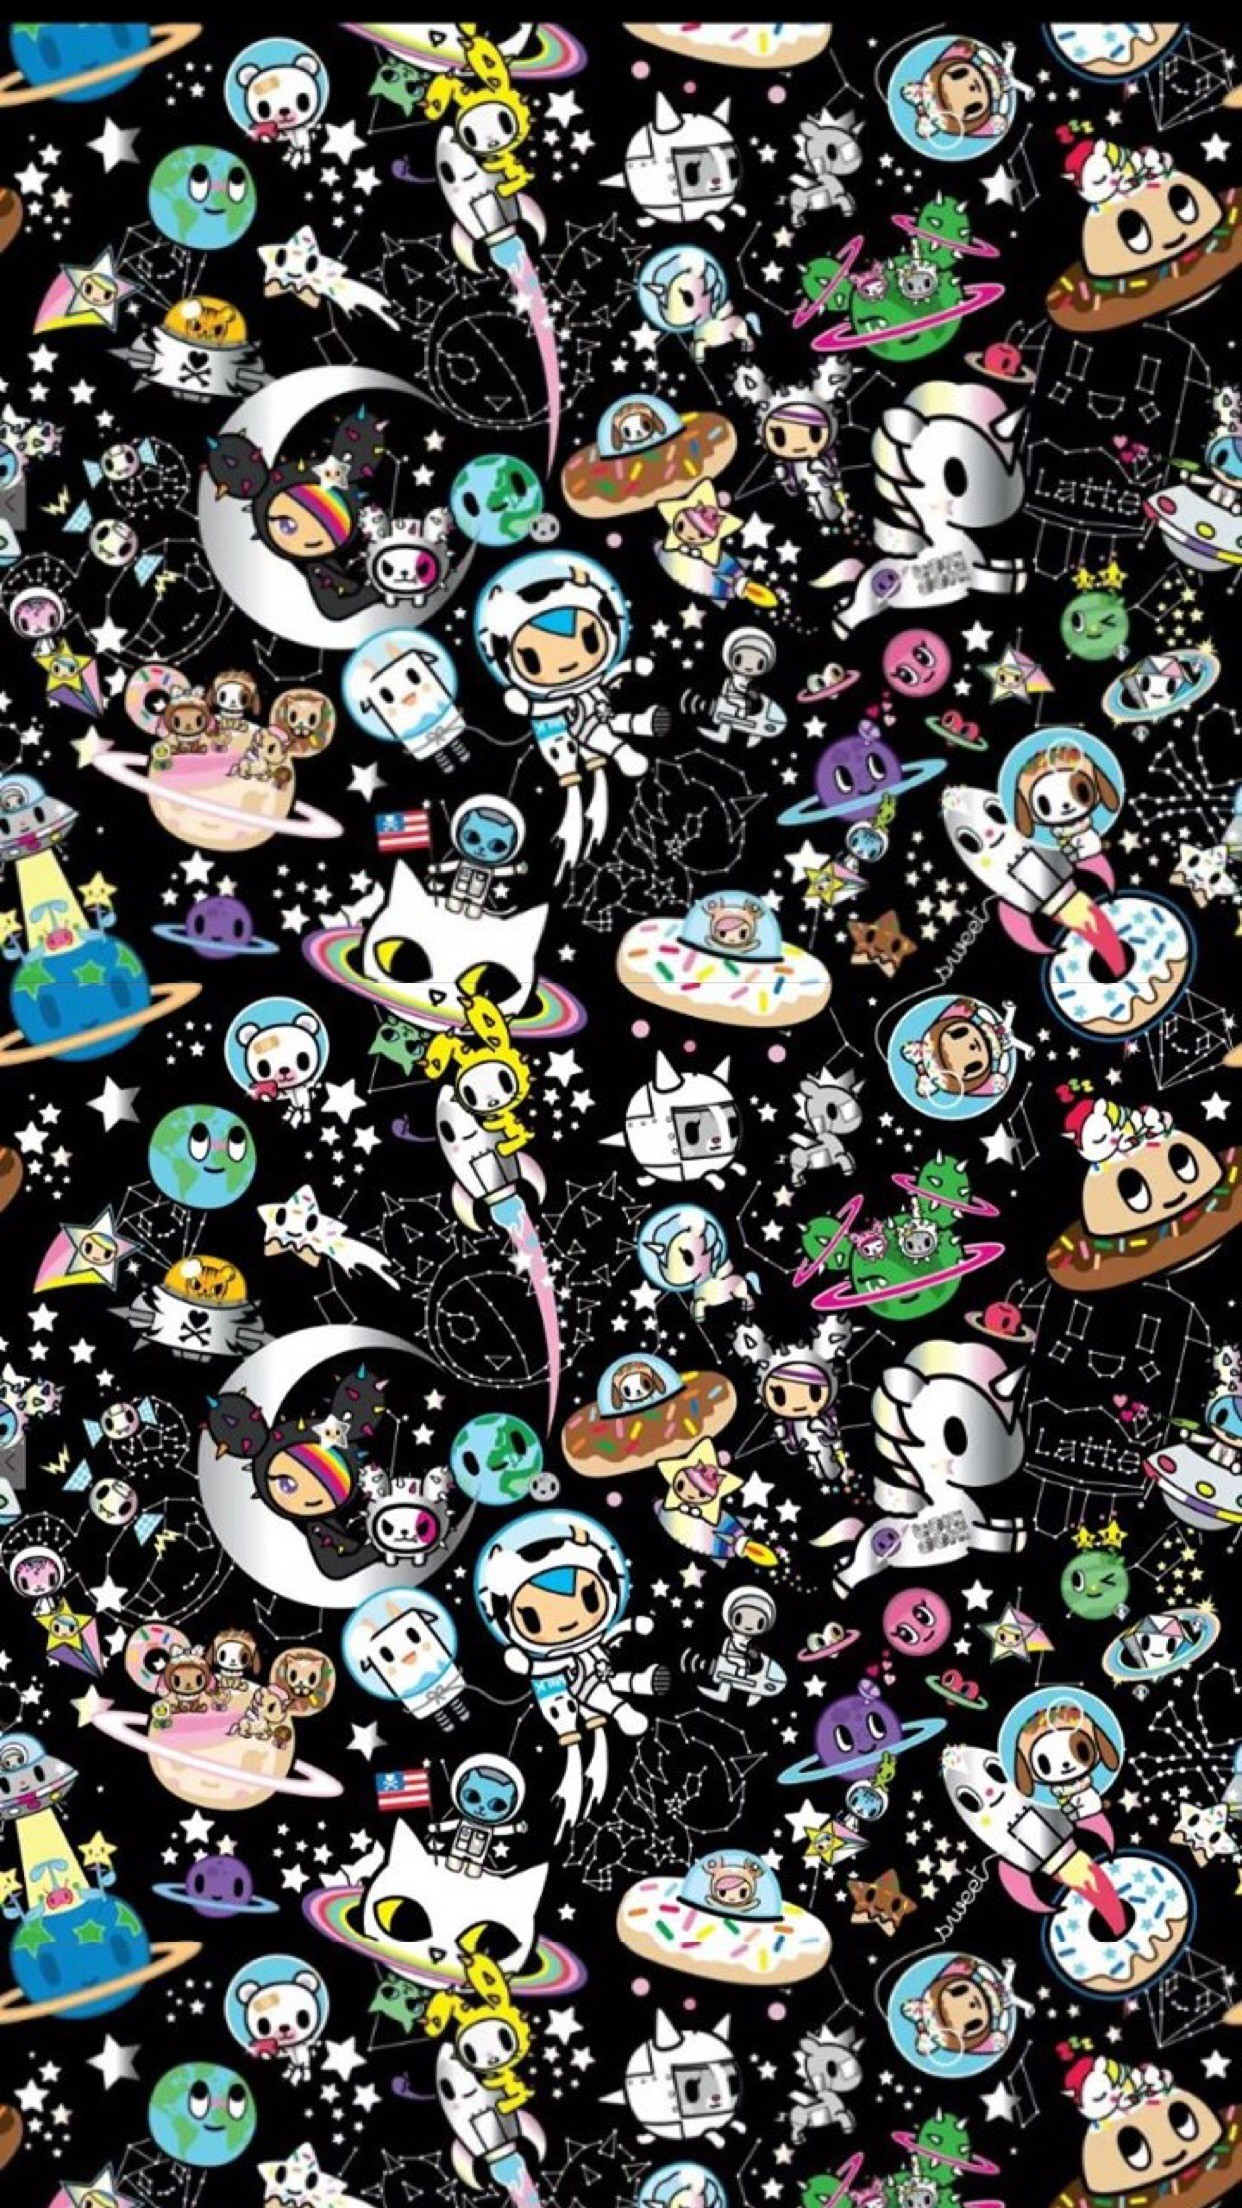 Tokidoki unicorno wallpaper 69 images - Wallpapers pc ...